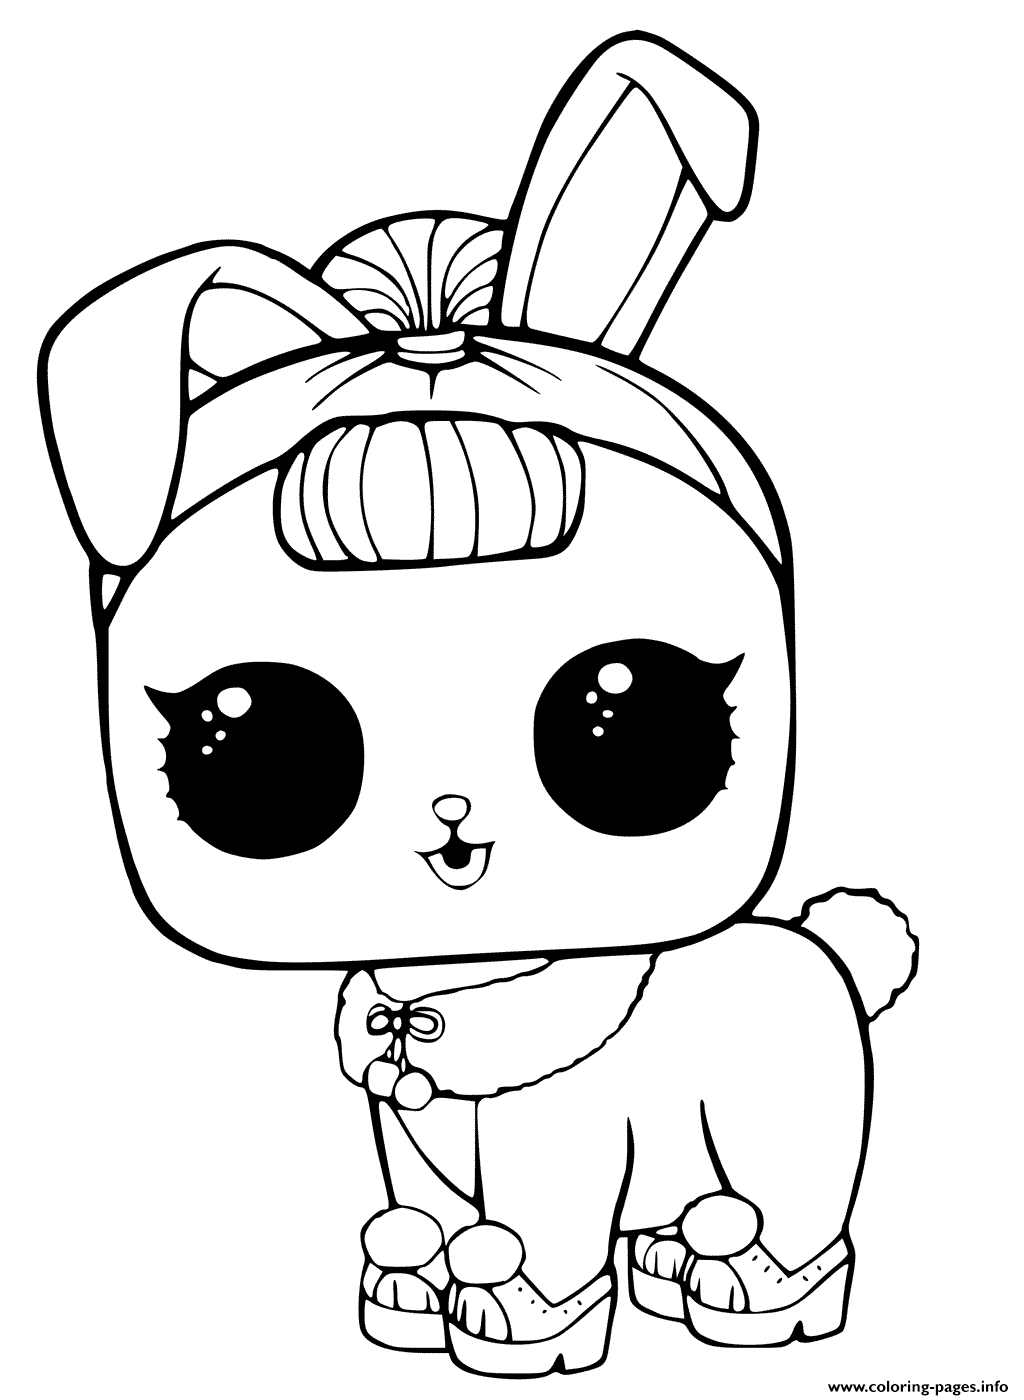 bunny coloring pages real bunny coloring pages download and print for free bunny coloring pages